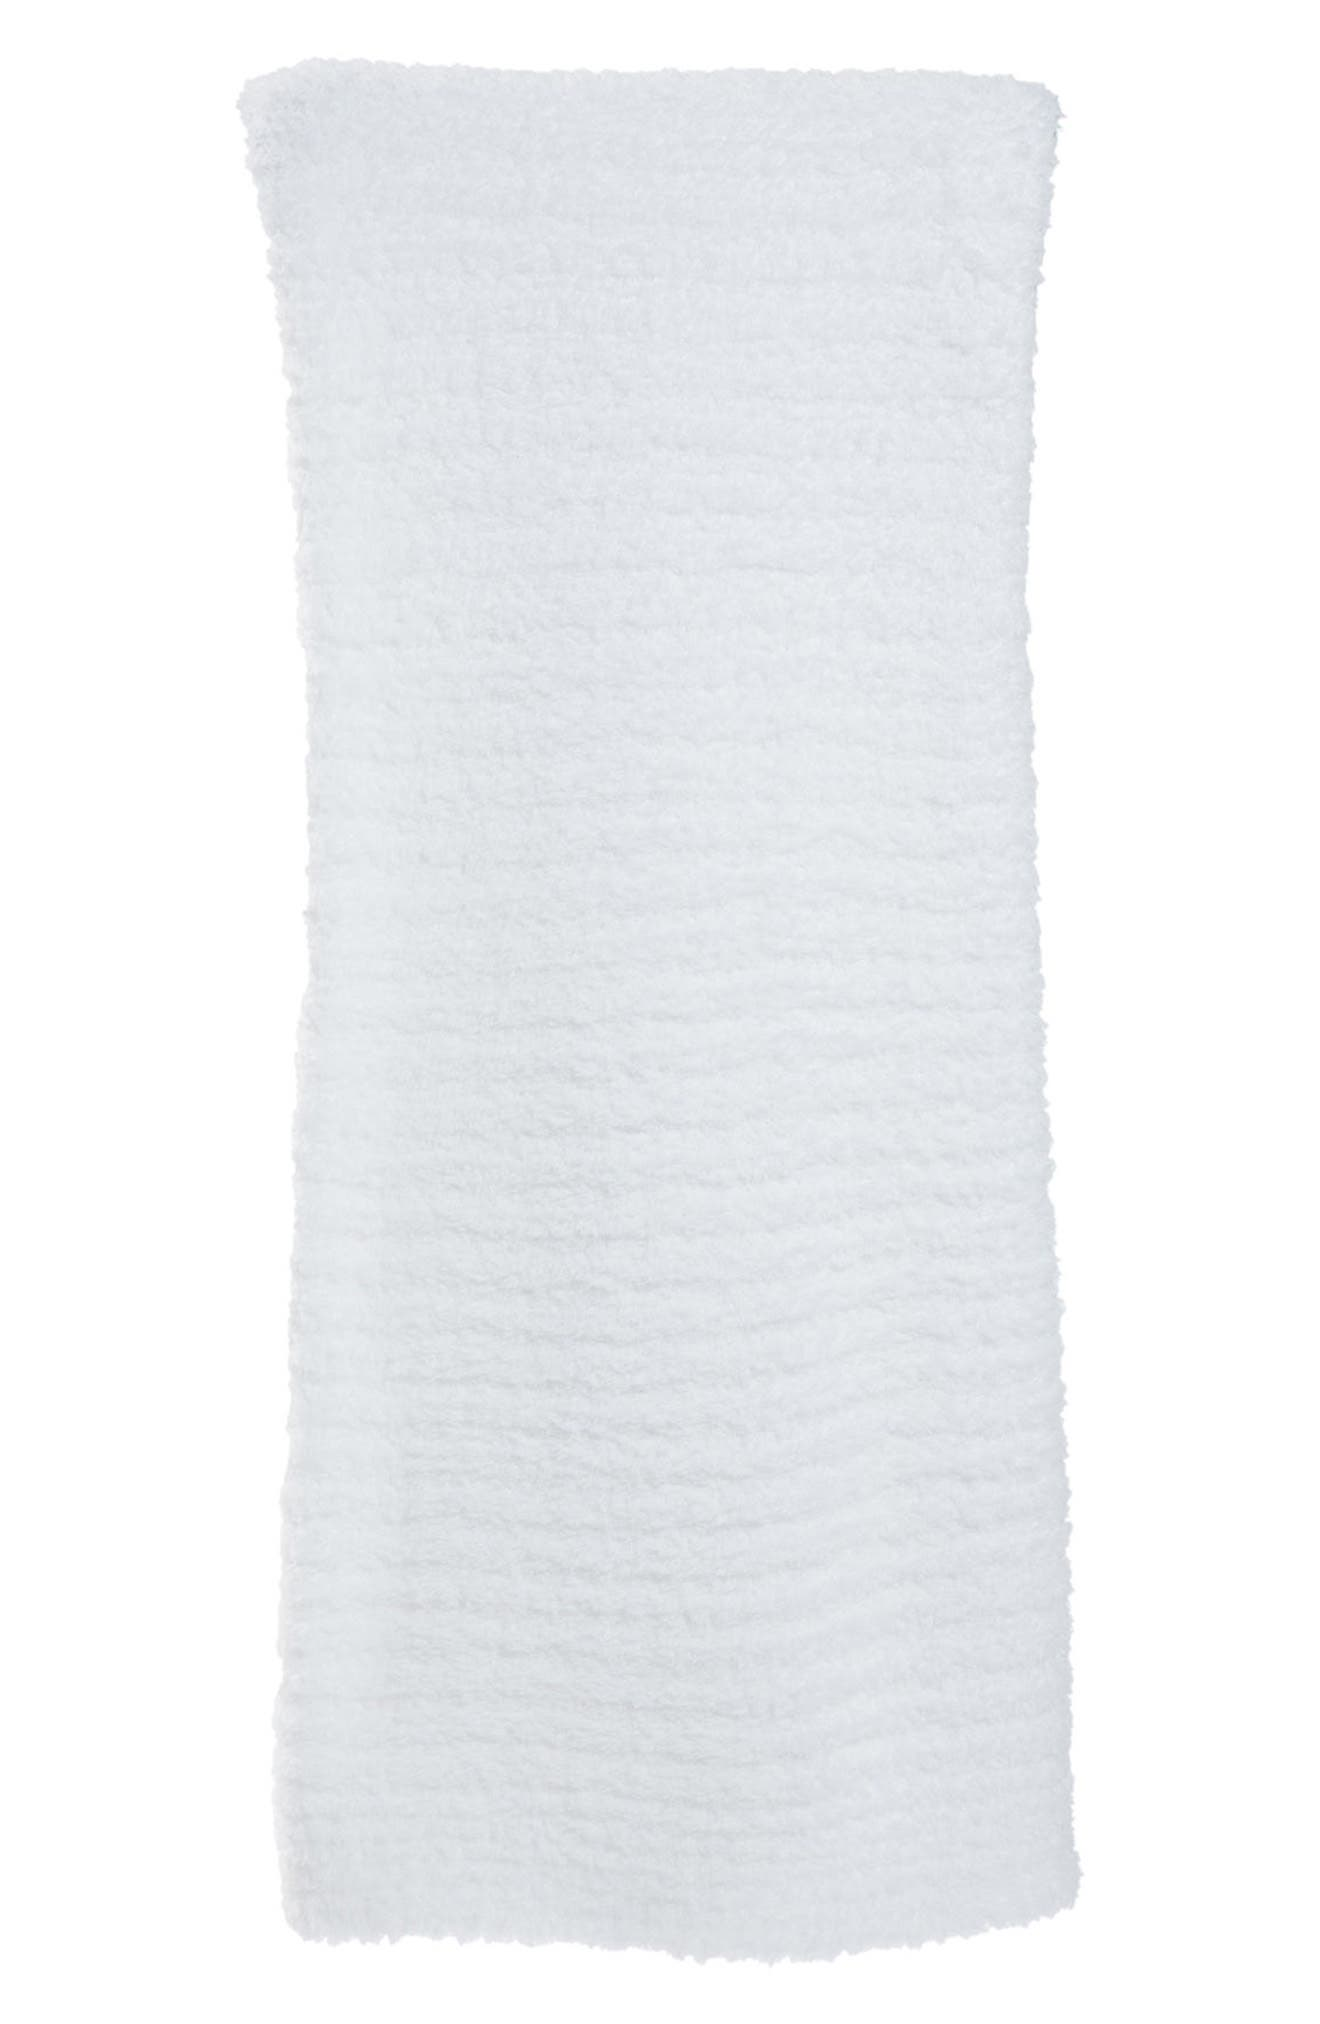 'CozyChic<sup>®</sup>' Ribbed Throw Blanket,                             Main thumbnail 1, color,                             White